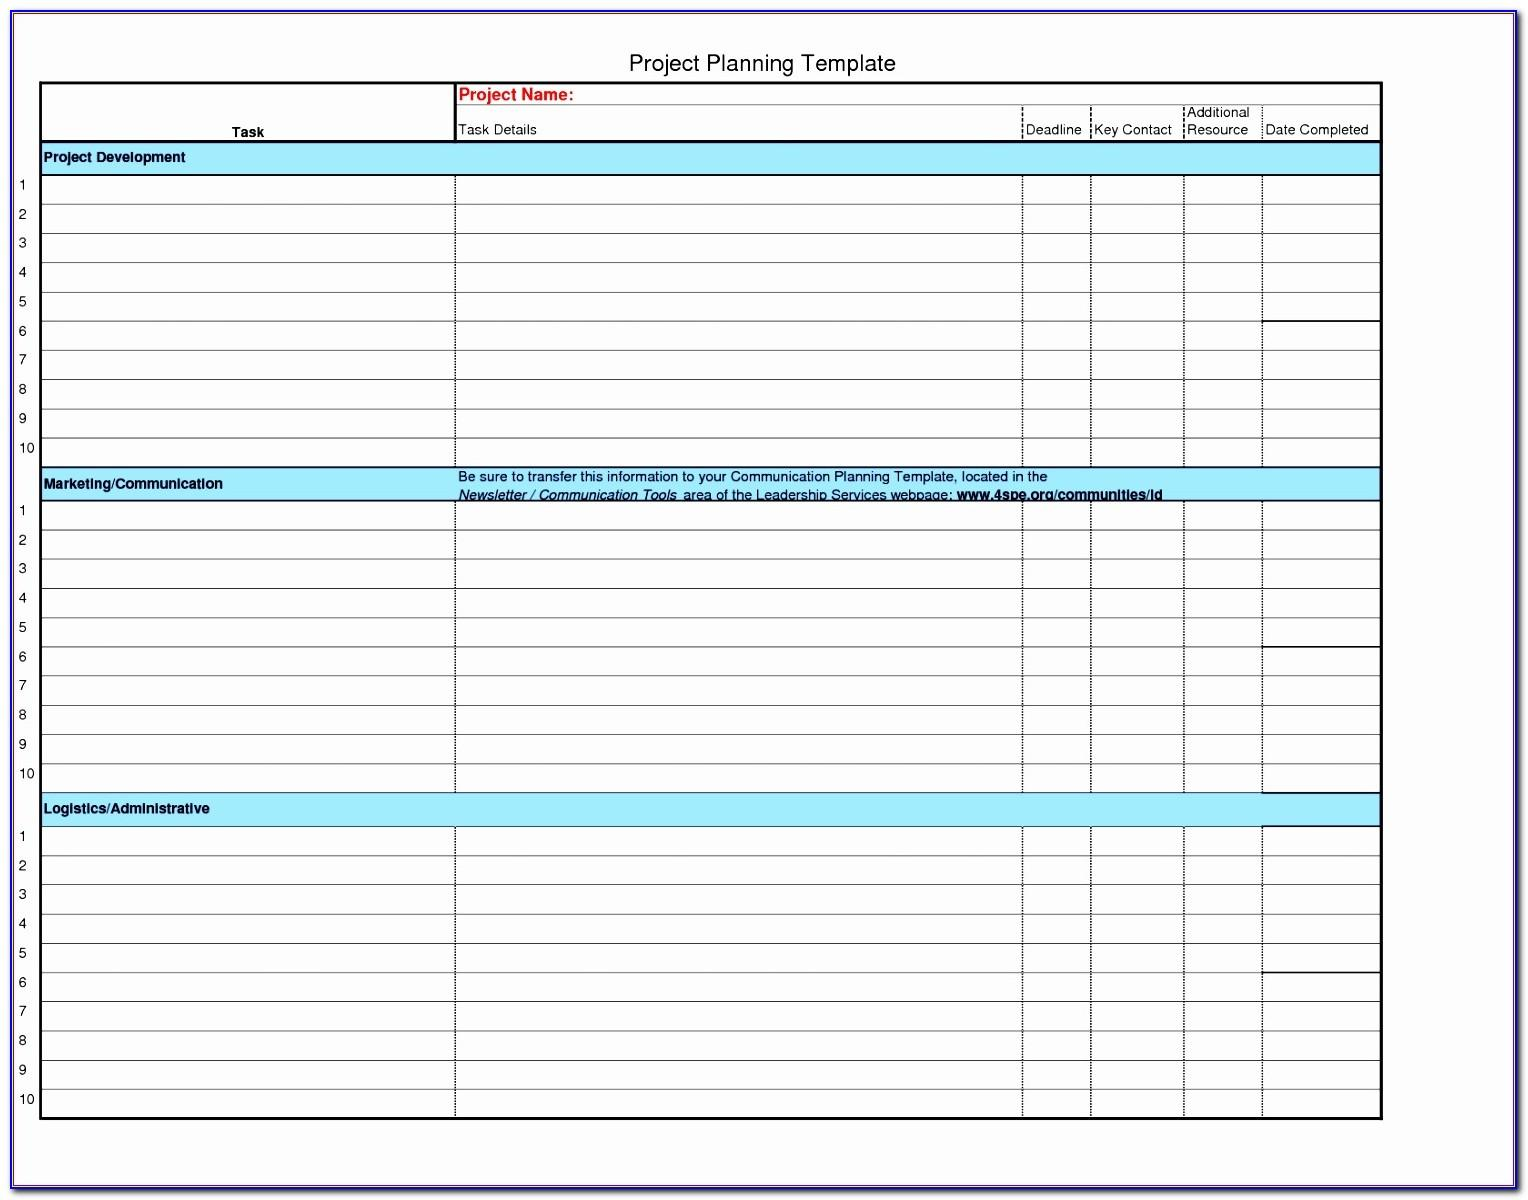 Project Plan Template Excel 2010